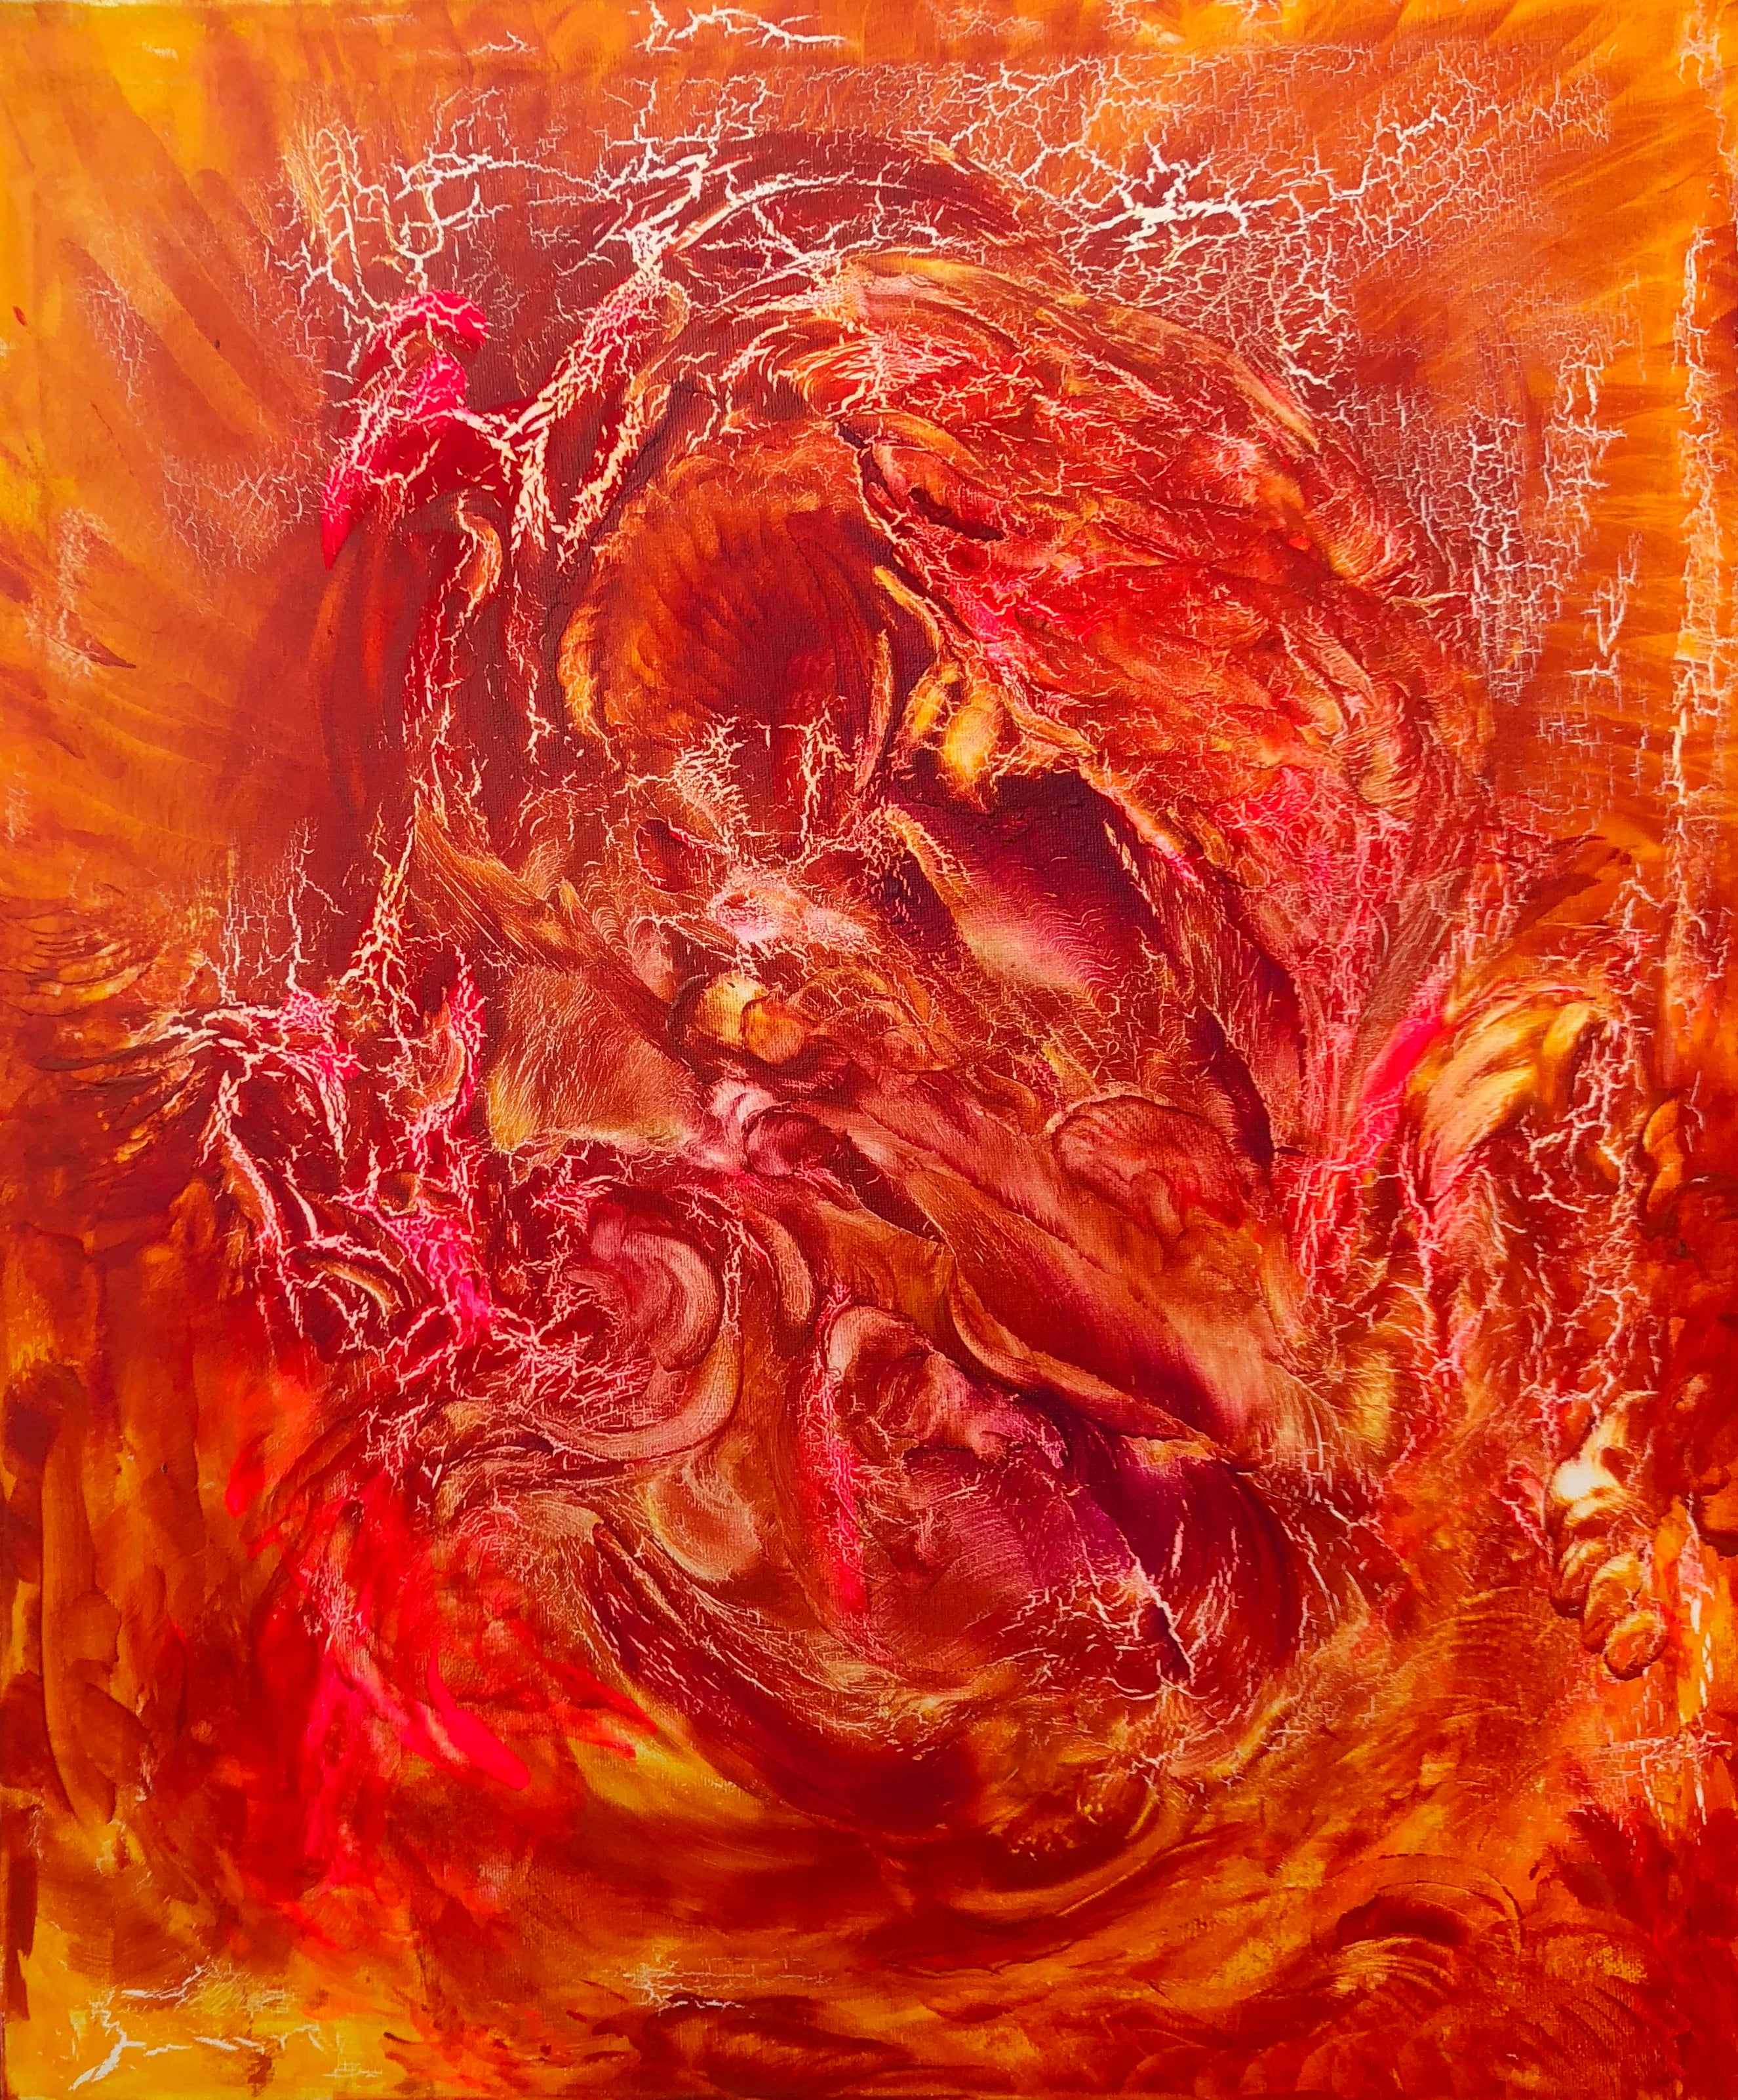 Oil painting on canvas contemporary art 21st century red orange yellow